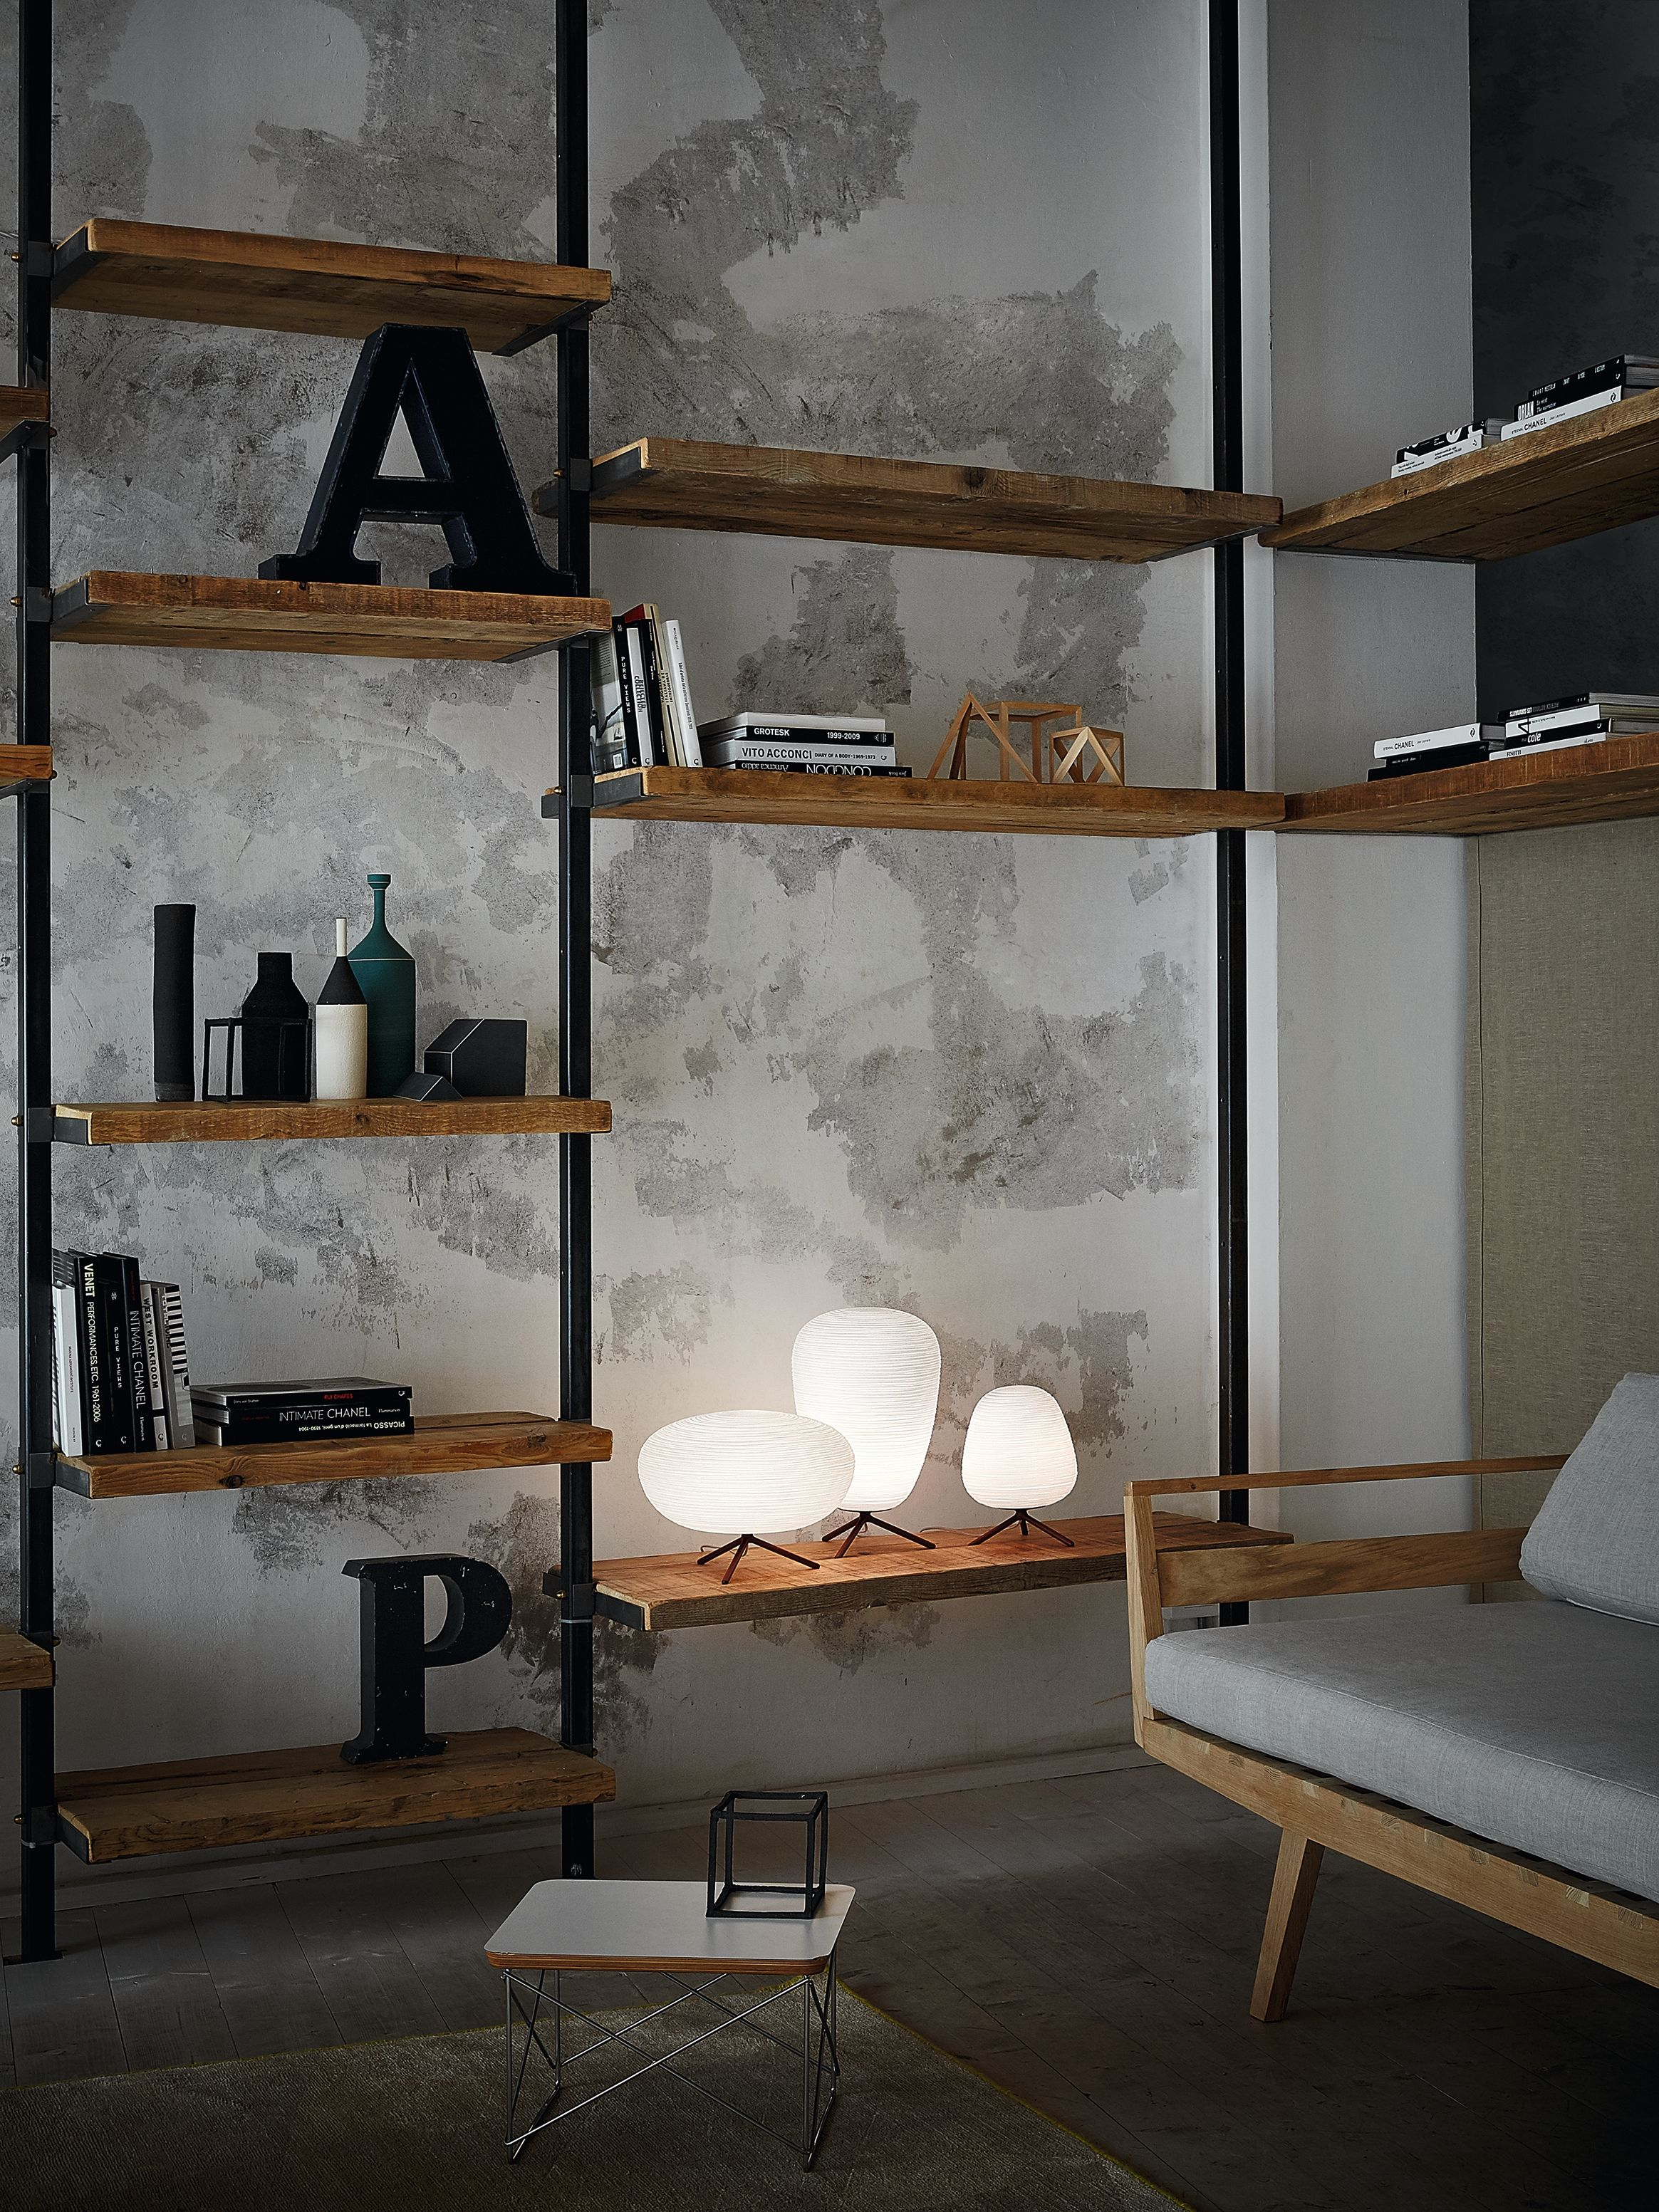 Rituals foscarini design by ludovica roberto palomba lighting house design lamp - Libri design interni ...